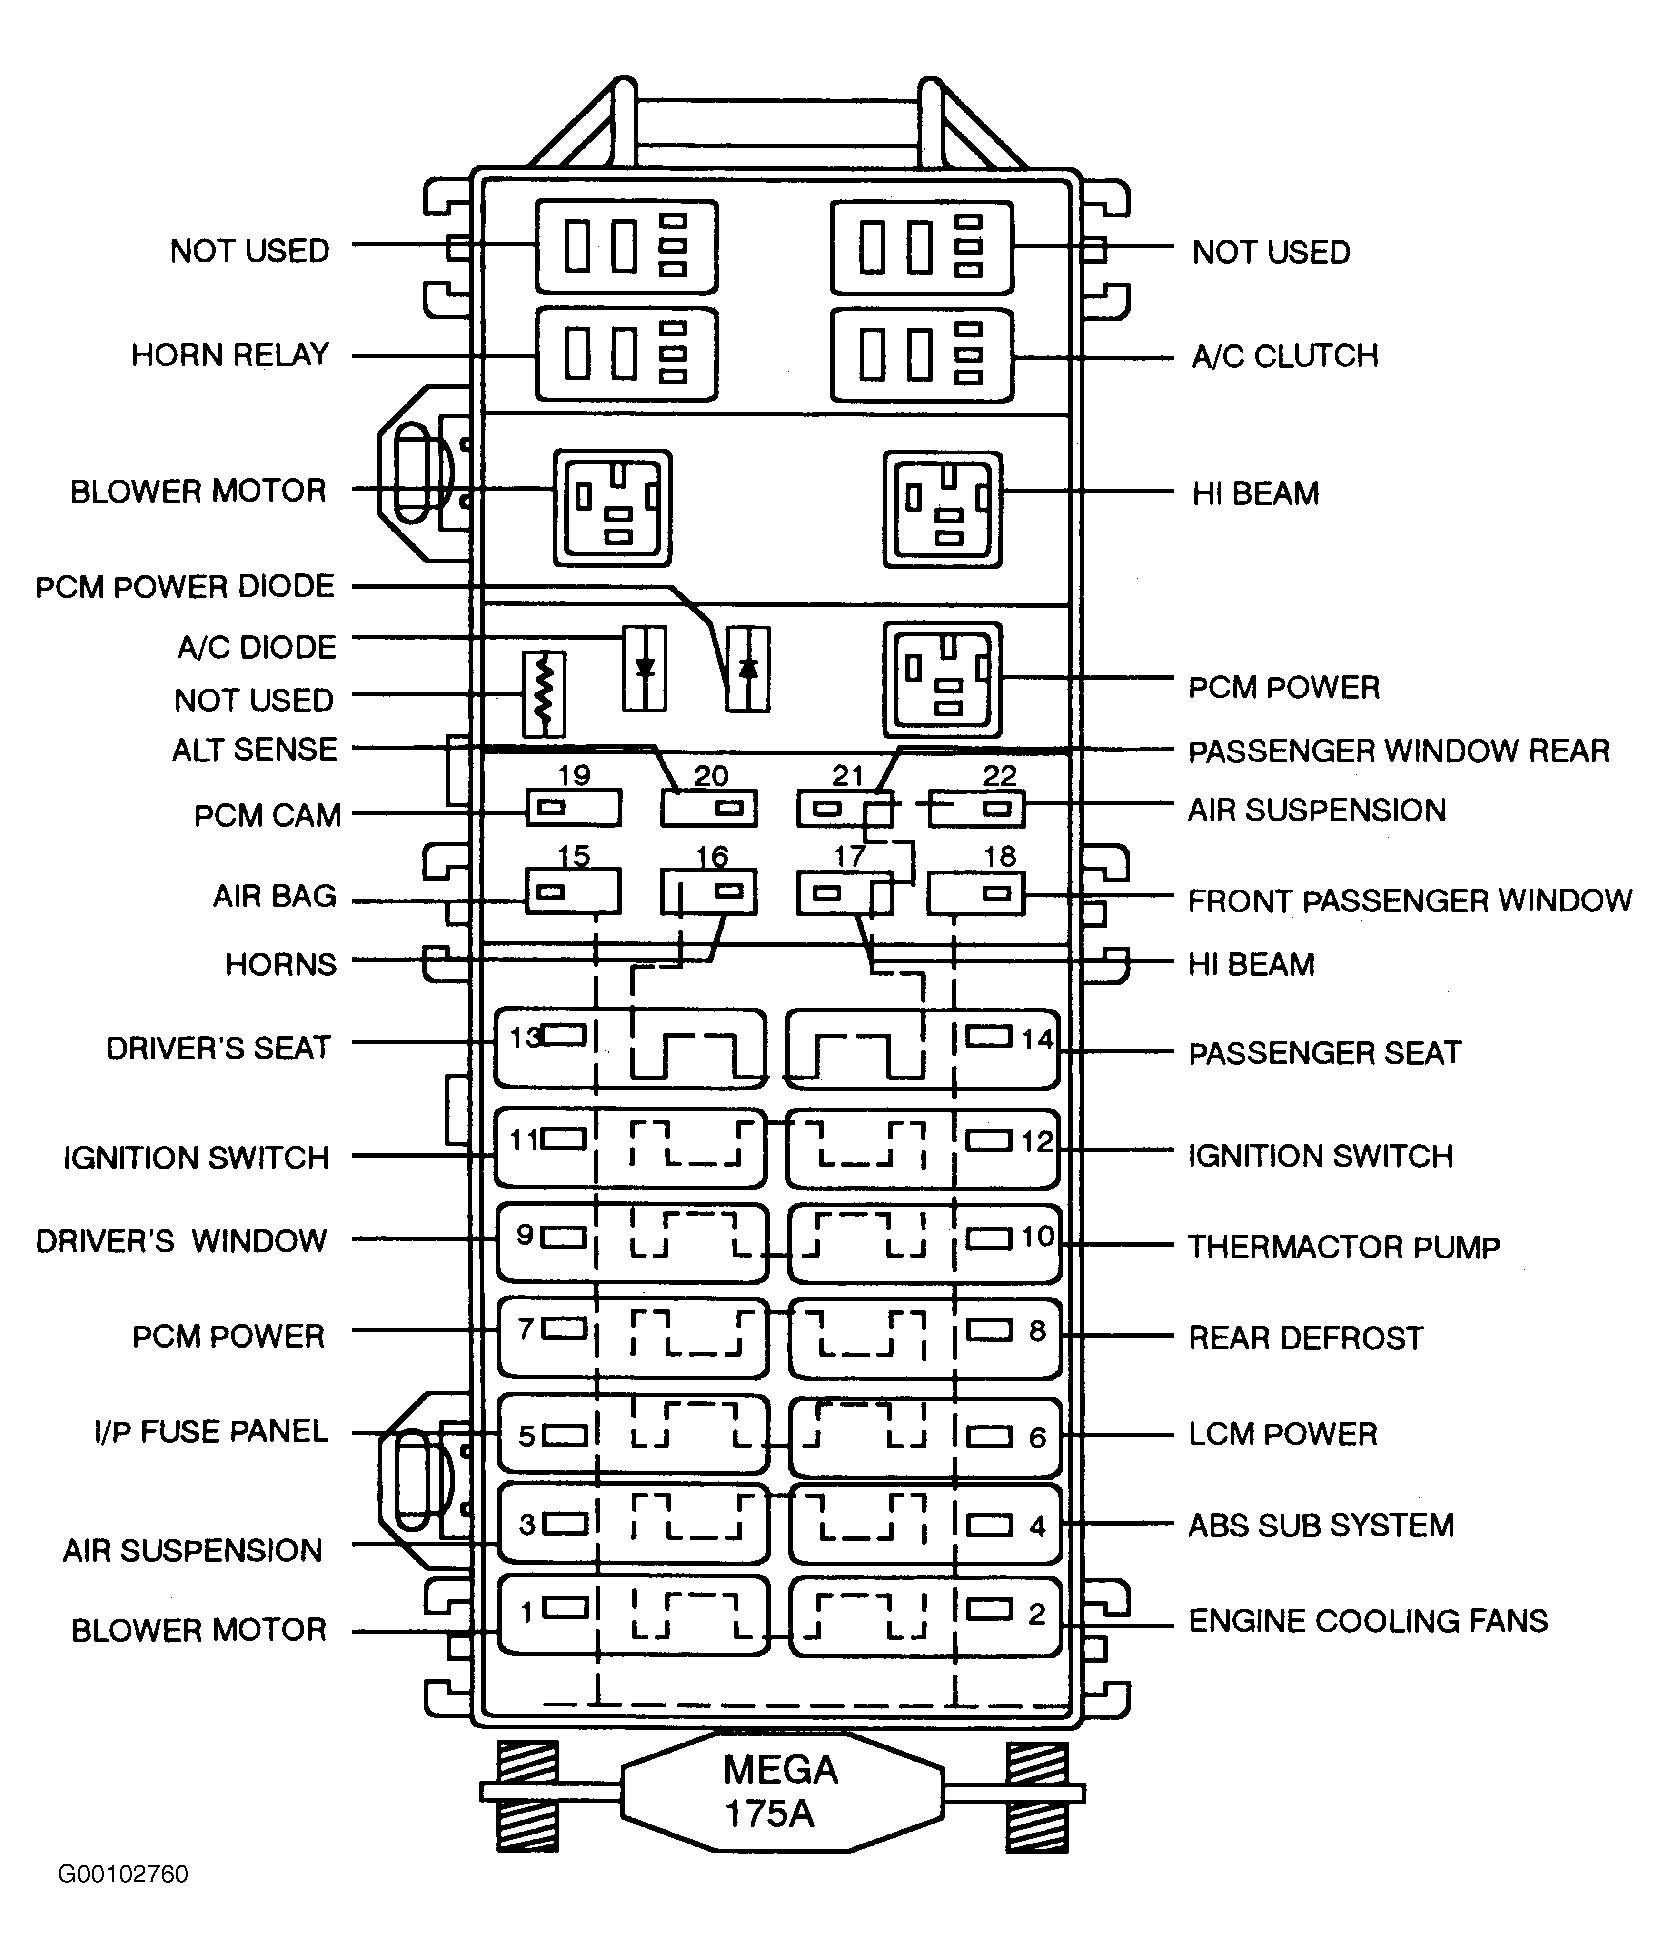 1992 lincoln town car fuse box diagram 92 lincoln continental fuse diagram | better wiring ...